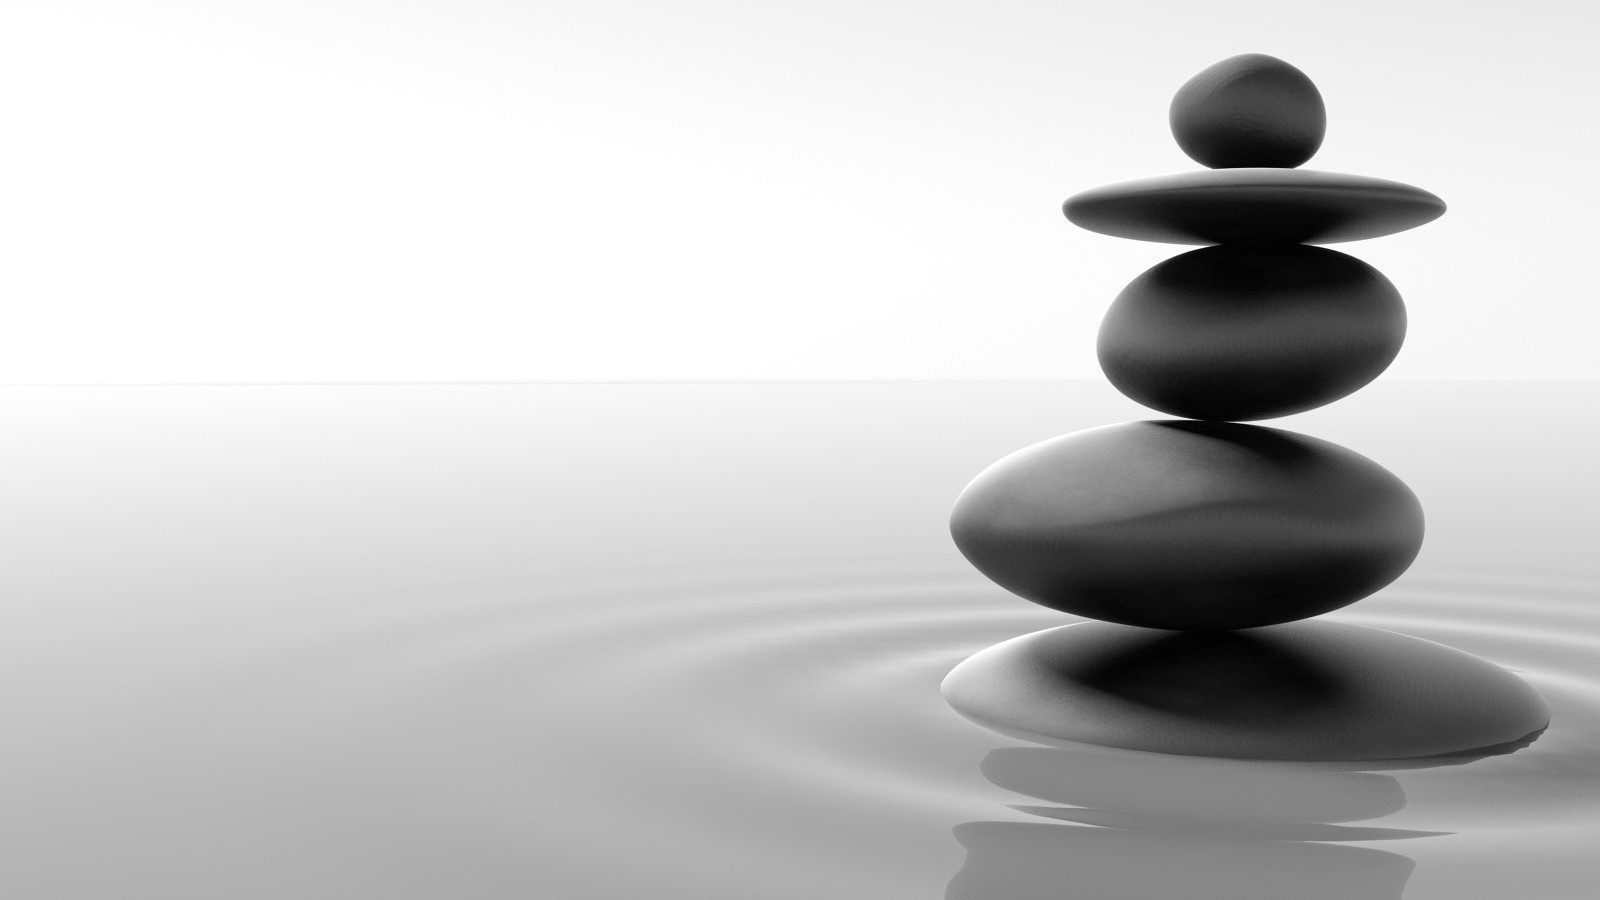 Zen balance pebbles HD Wallpaper